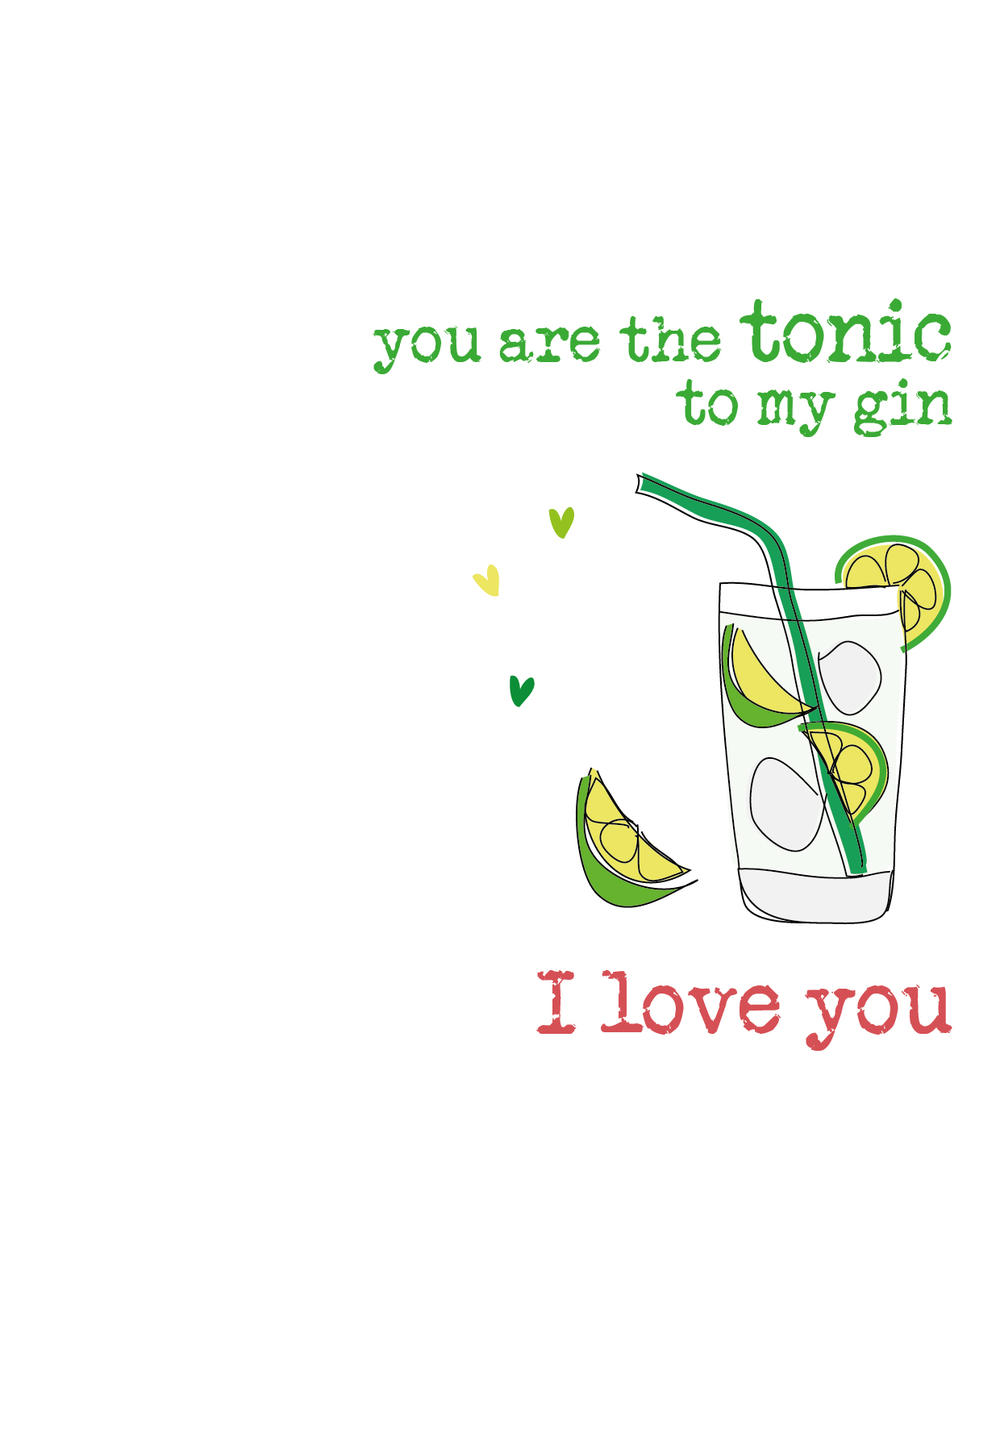 I Love You G&T Sparkle Finished Greeting Card